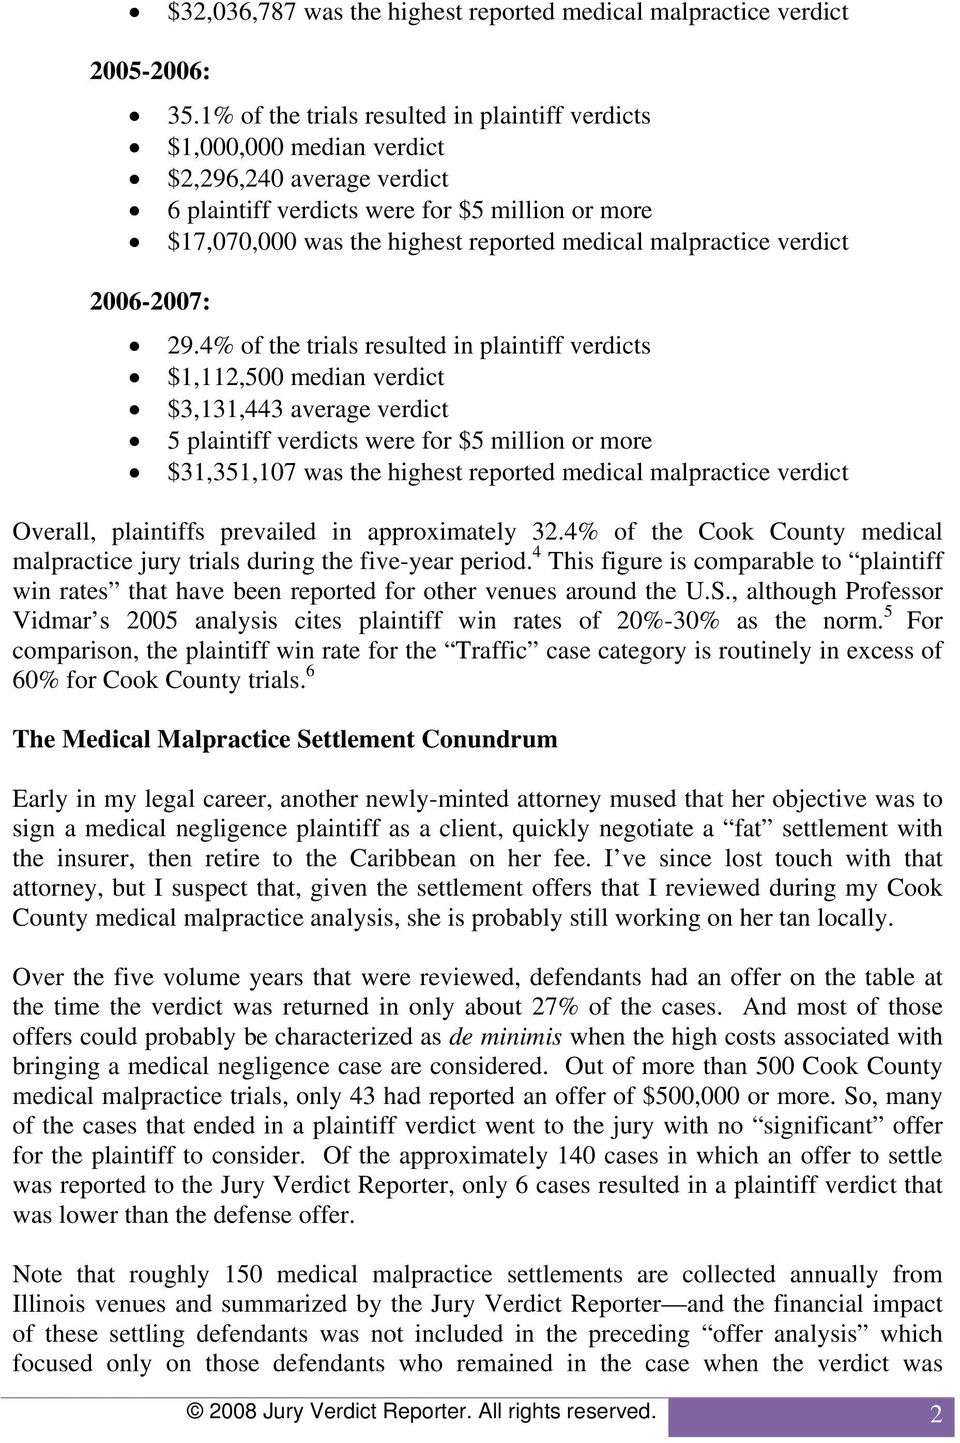 4% of the trials resulted in plaintiff s $1,112,500 median $3,131,443 average 5 plaintiff s were for $5 million or more $31,351,107 was the highest reported medical malpractice Overall, plaintiffs